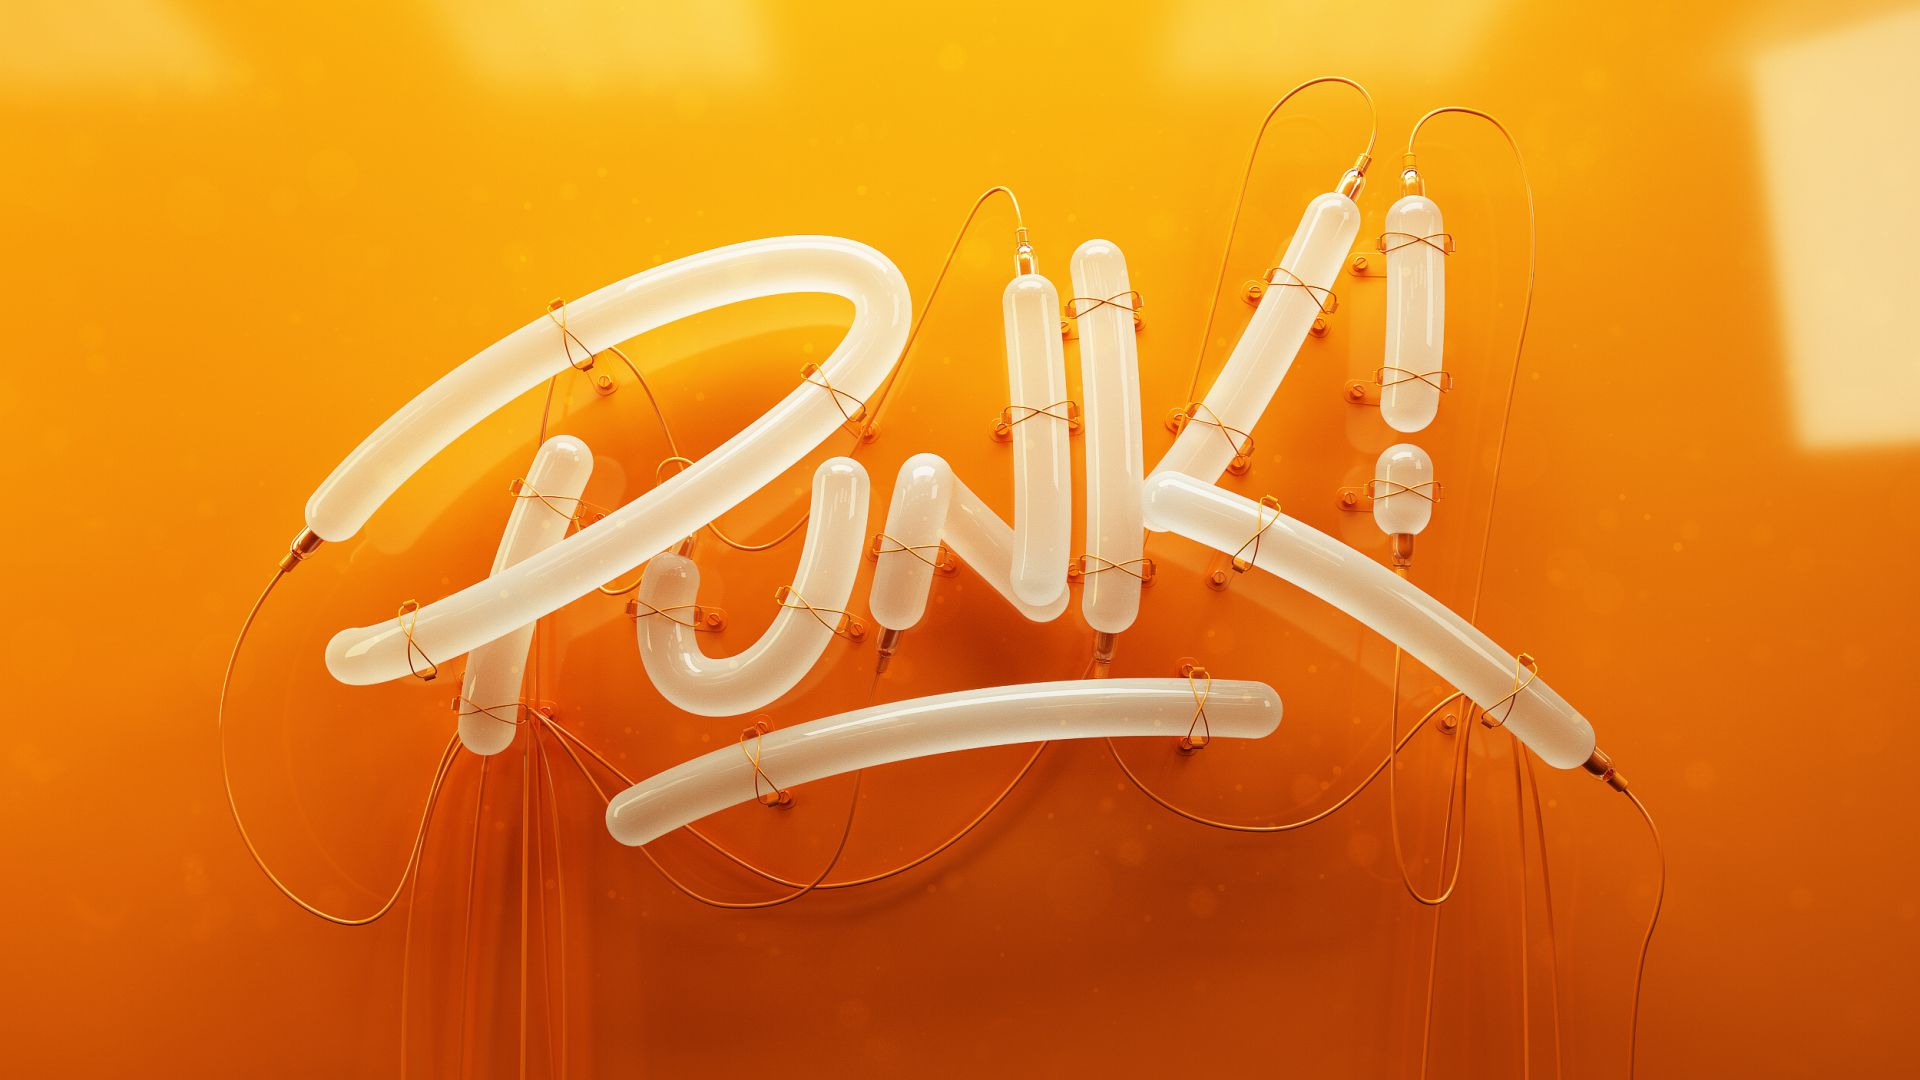 Панк, Punk, 3D letters, Typography, HD (horizontal)